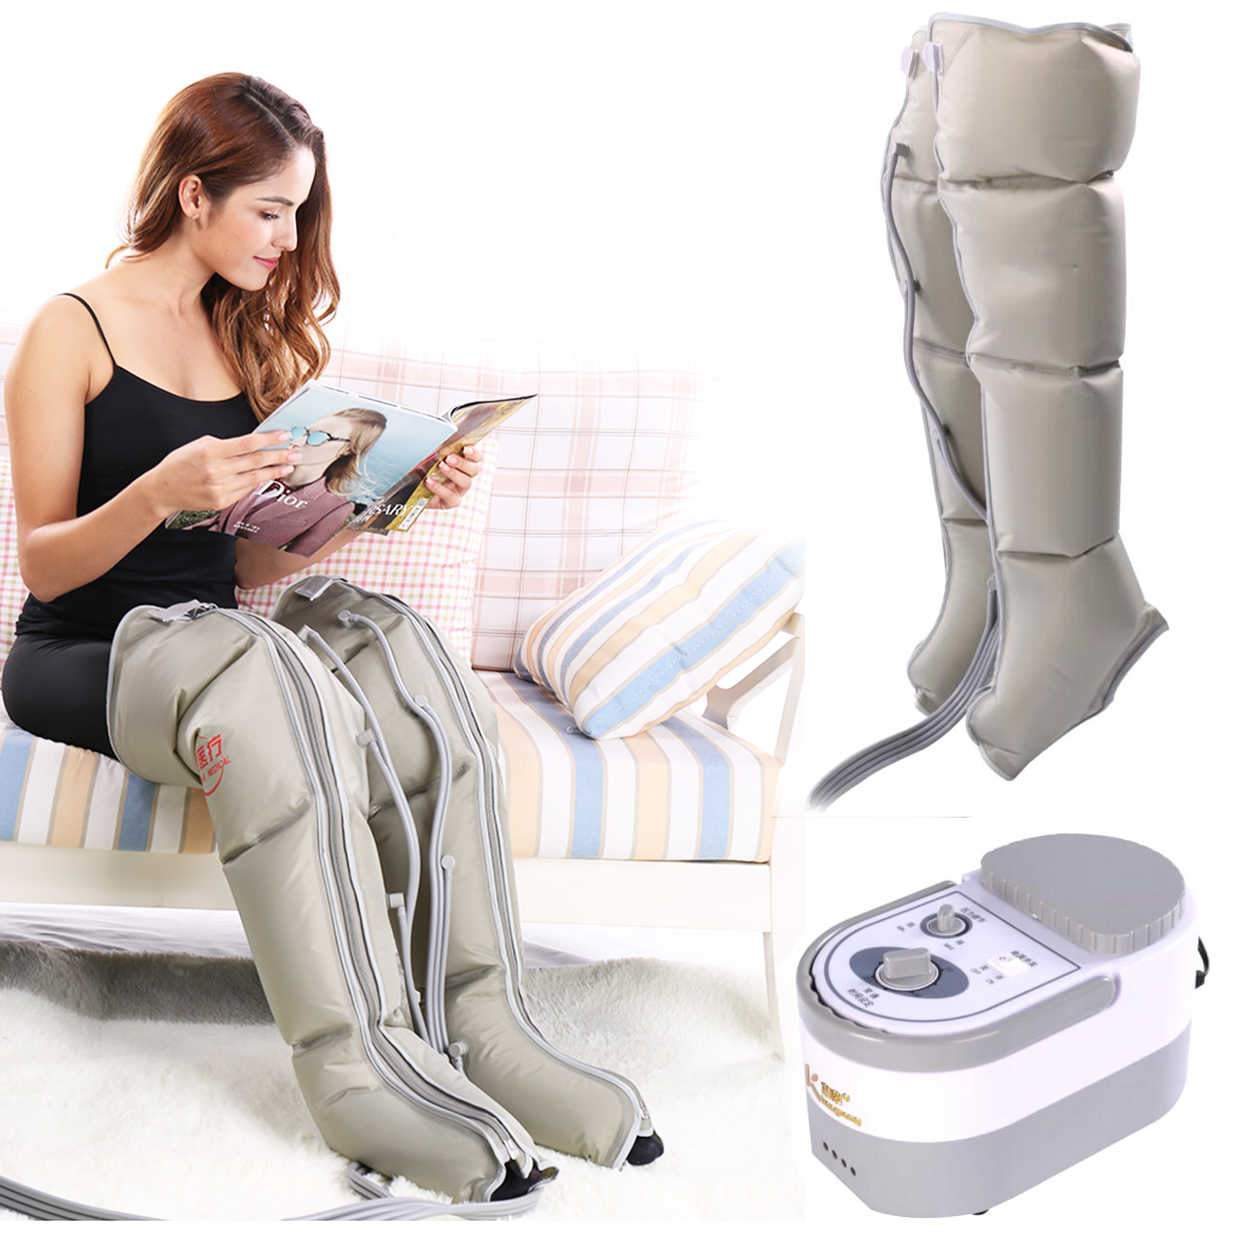 Air Compression Leg Massager